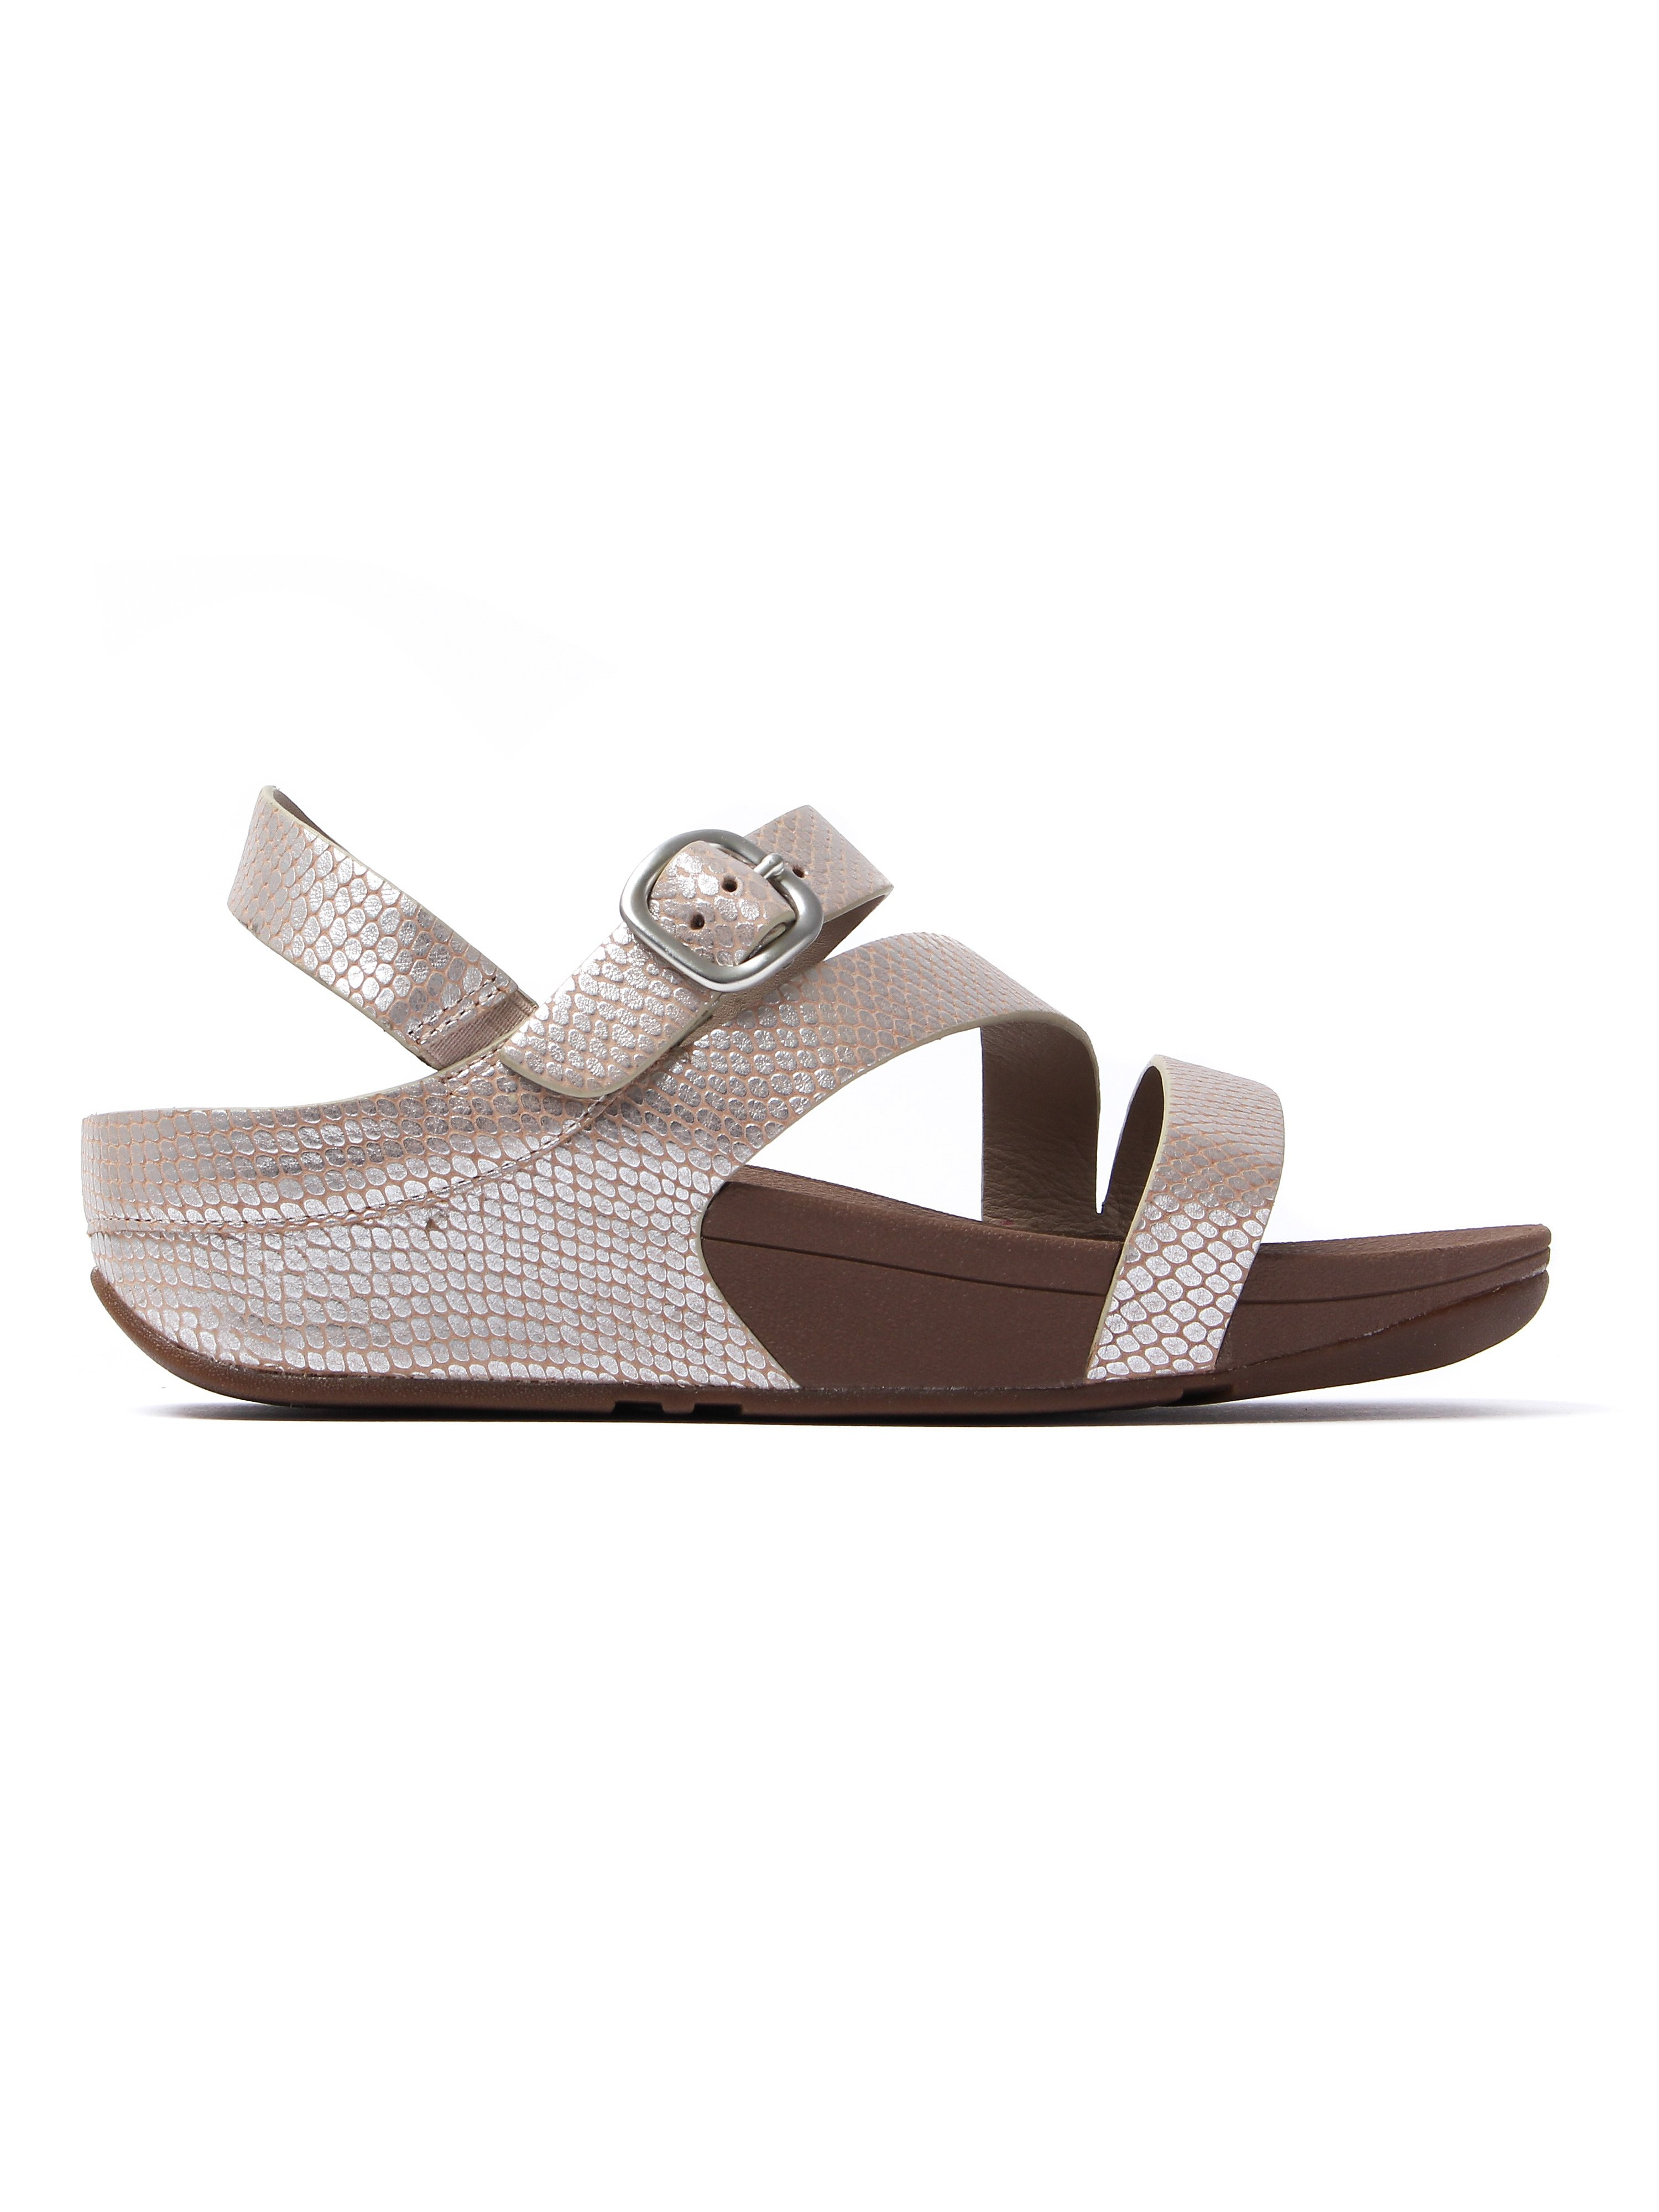 FitFlop Women's The Skinny Z-Cross Sandals - Silver Snake Skin